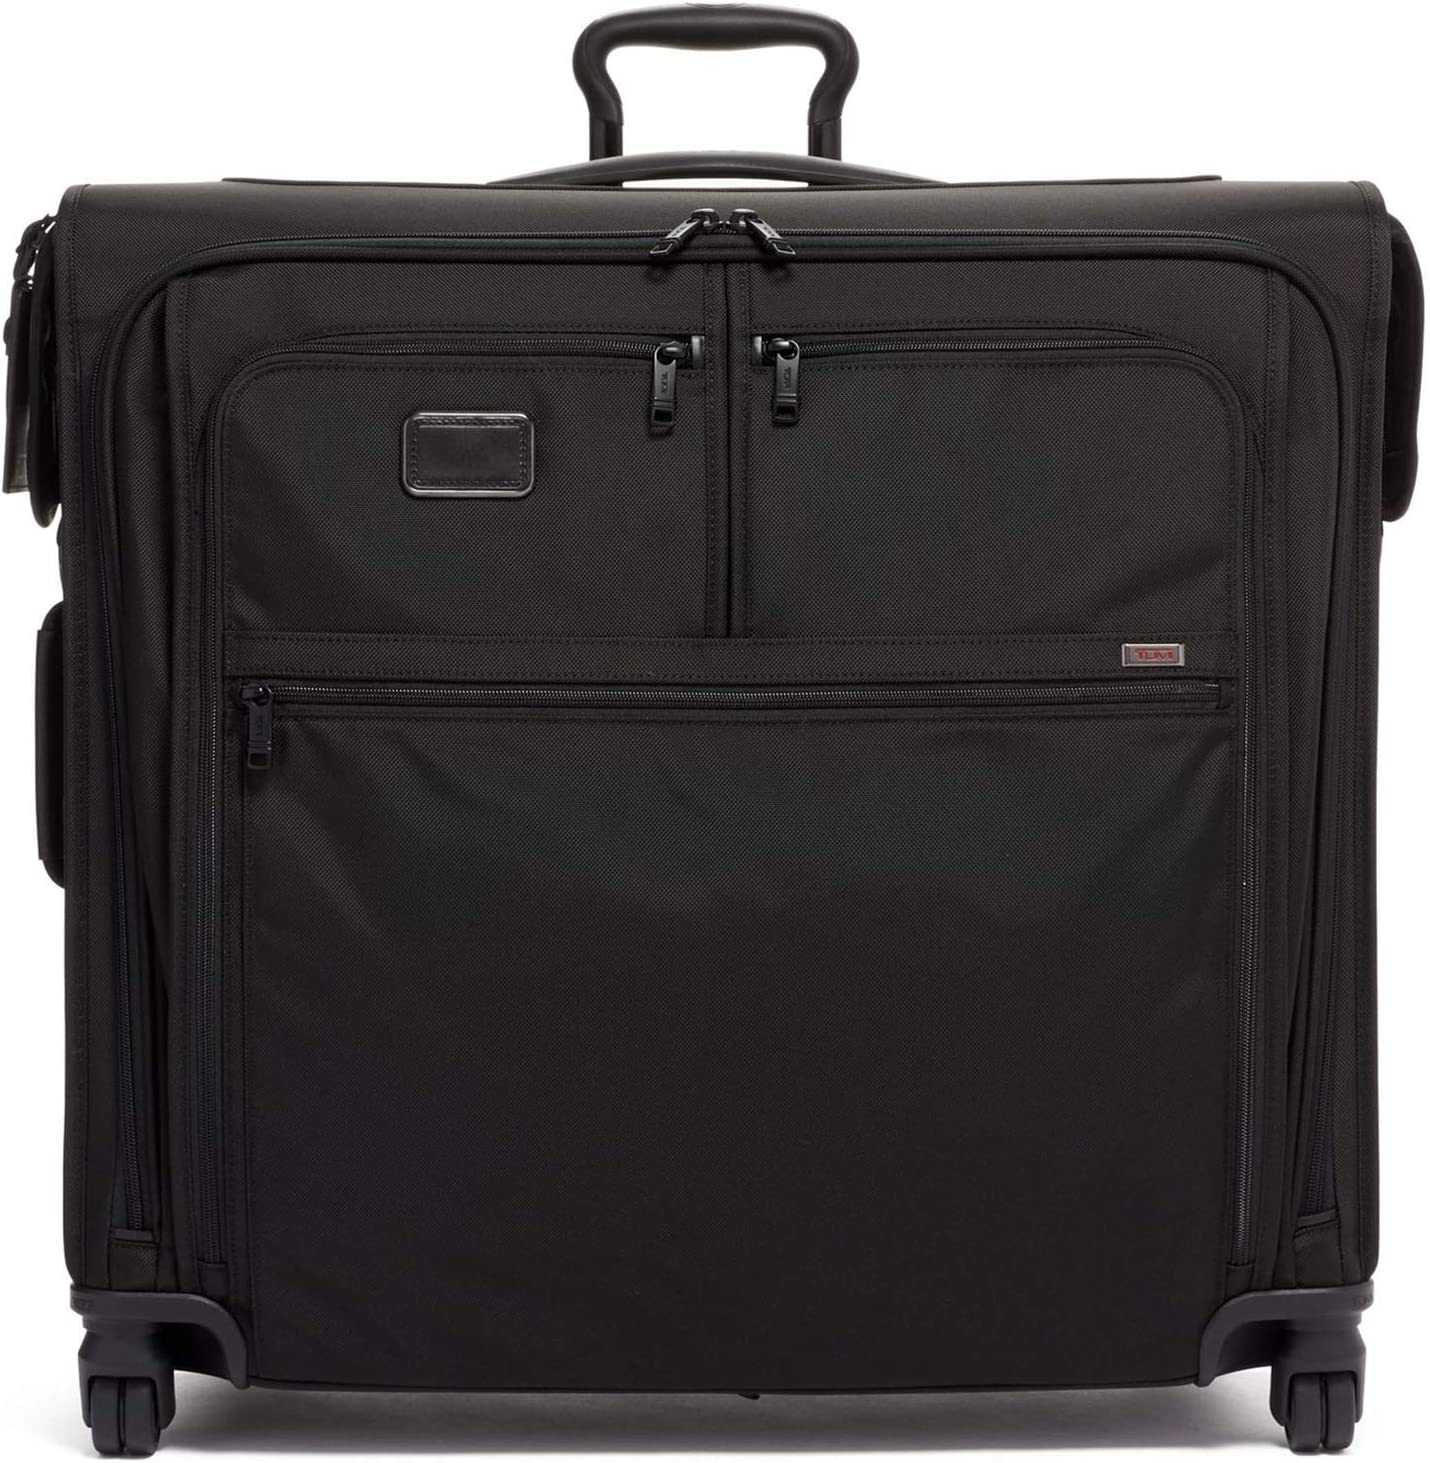 TUMI - Alpha 3 Extended Trip 4 Wheeled Garment Bag - Dress or Suit Bag for Men and Women - Black